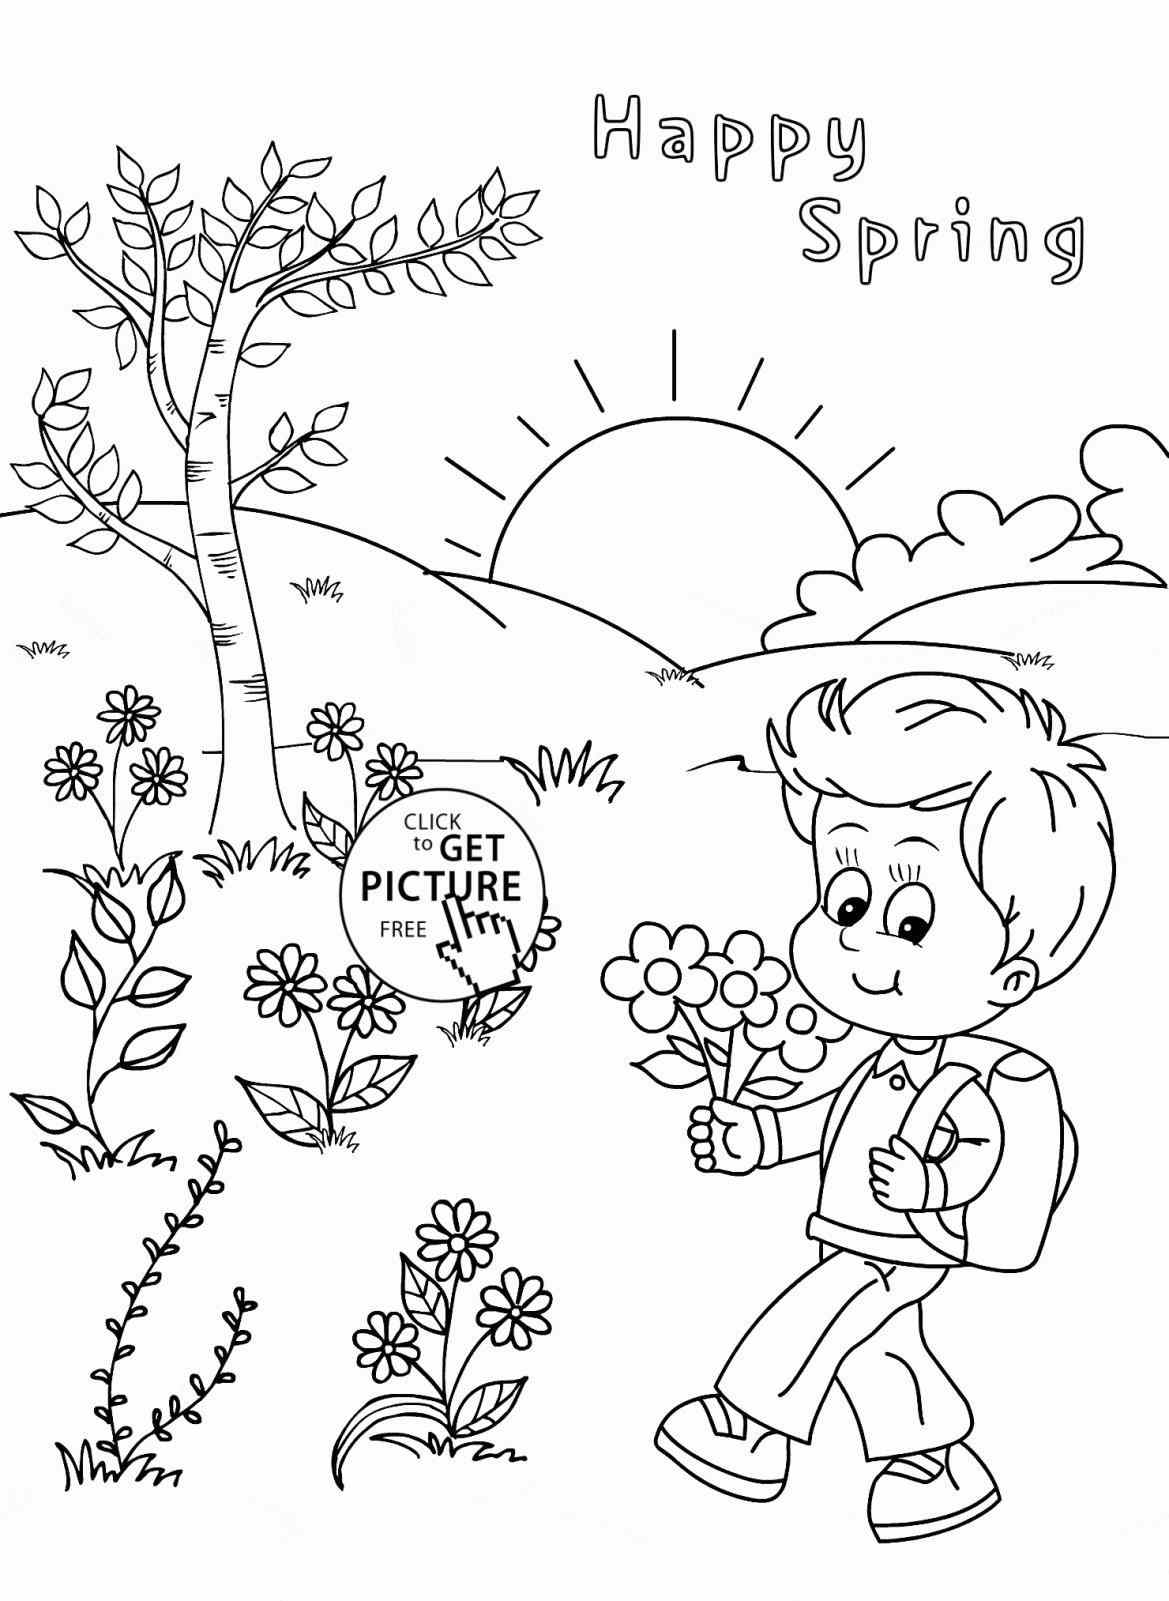 spring coloring pages for kids 307 free printable spring coloring sheets for kids pages kids for spring coloring